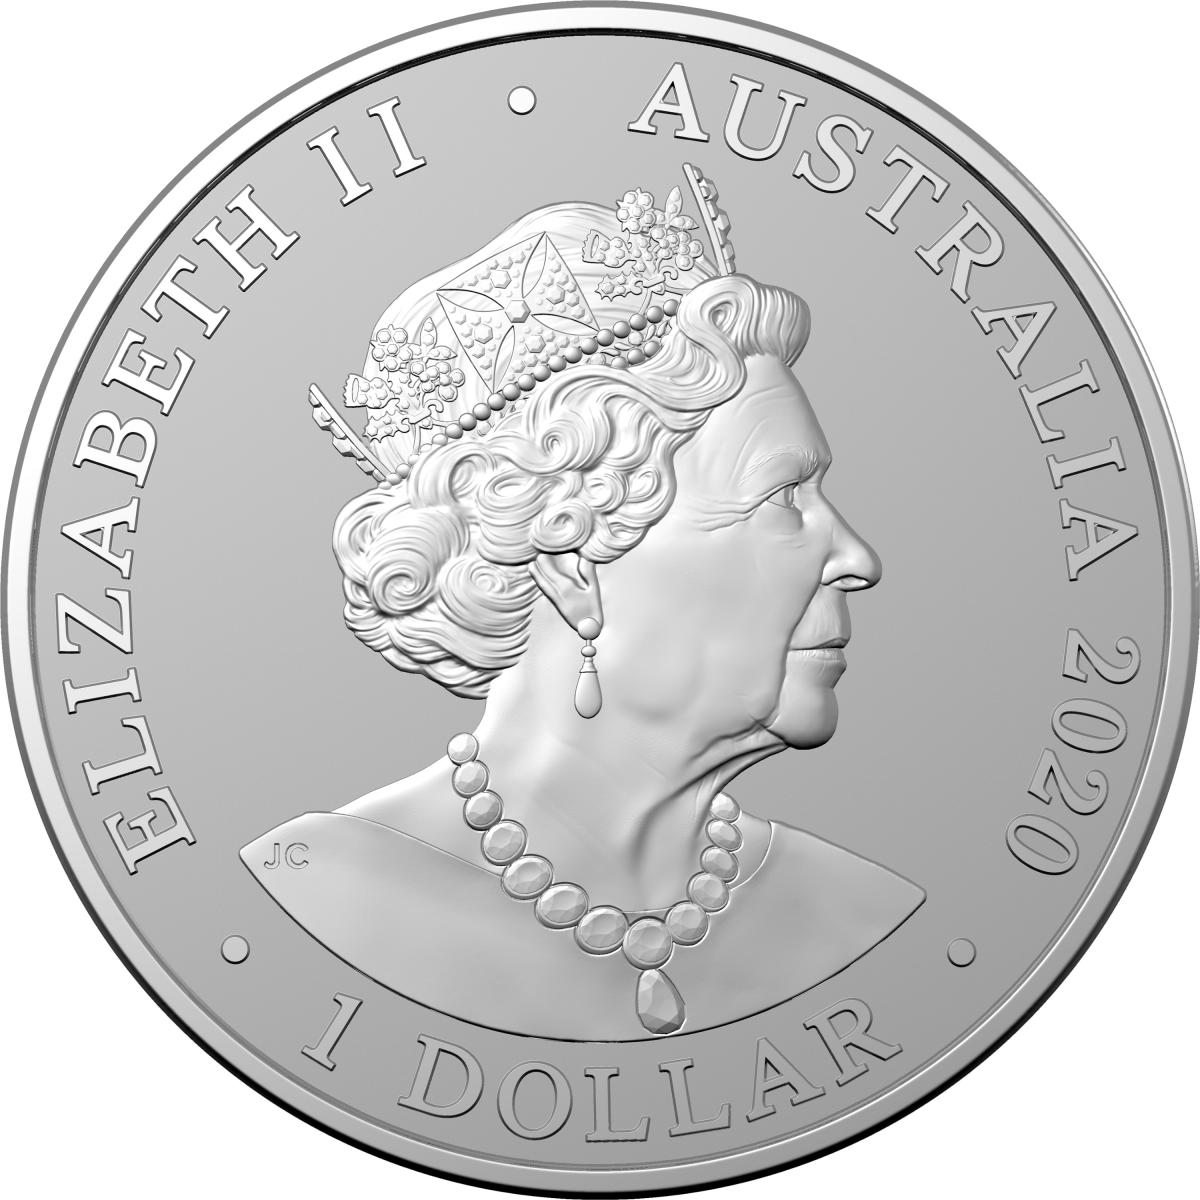 Tende Coin 2020.Investment Coins Royal Australian Mint